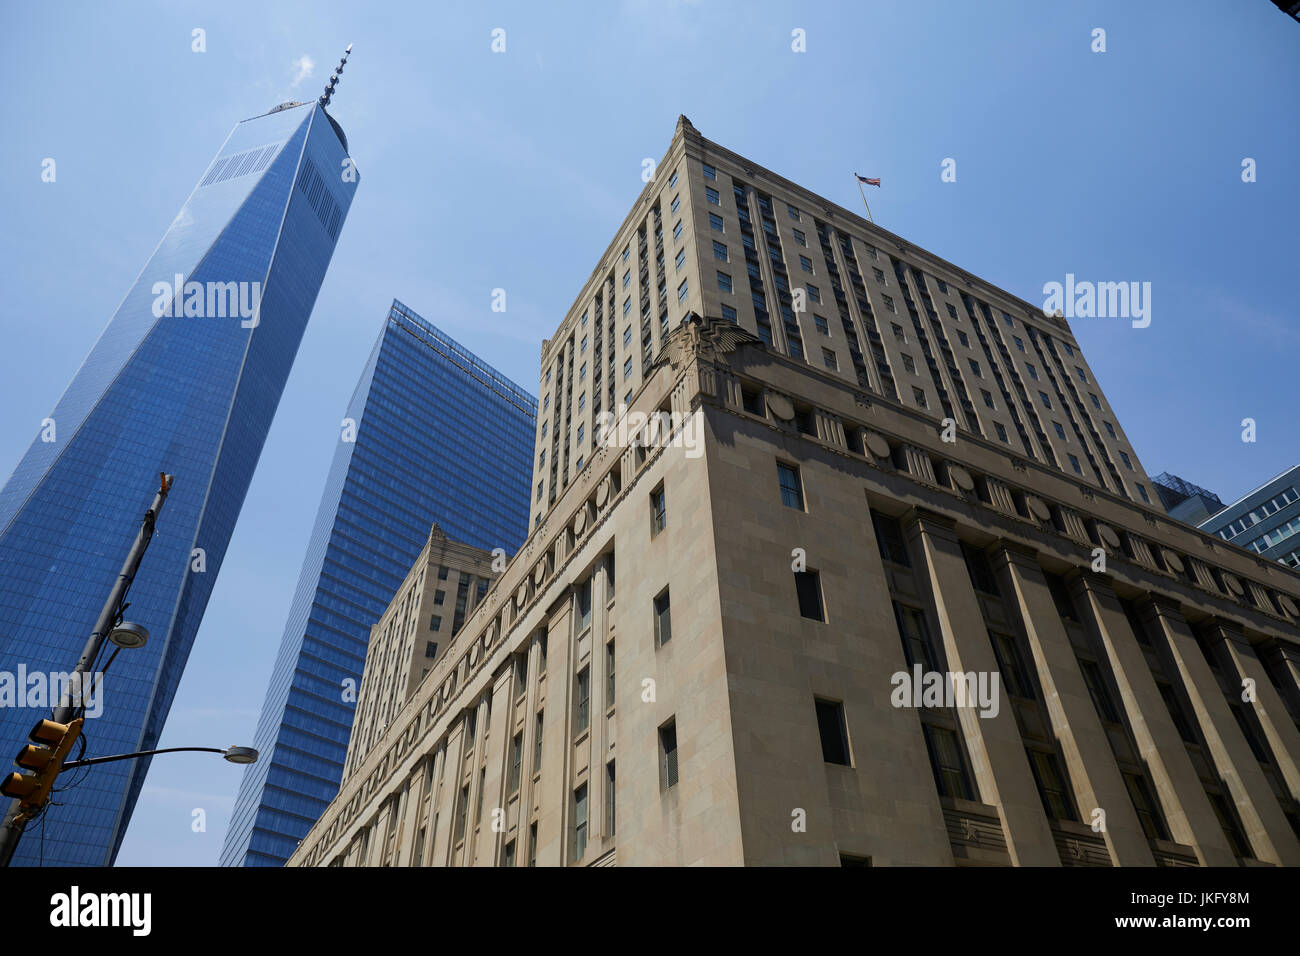 New York City, Manhattan, United States Postal Service building Downtown NYC and One World Trade Center by Daniel - Stock Image